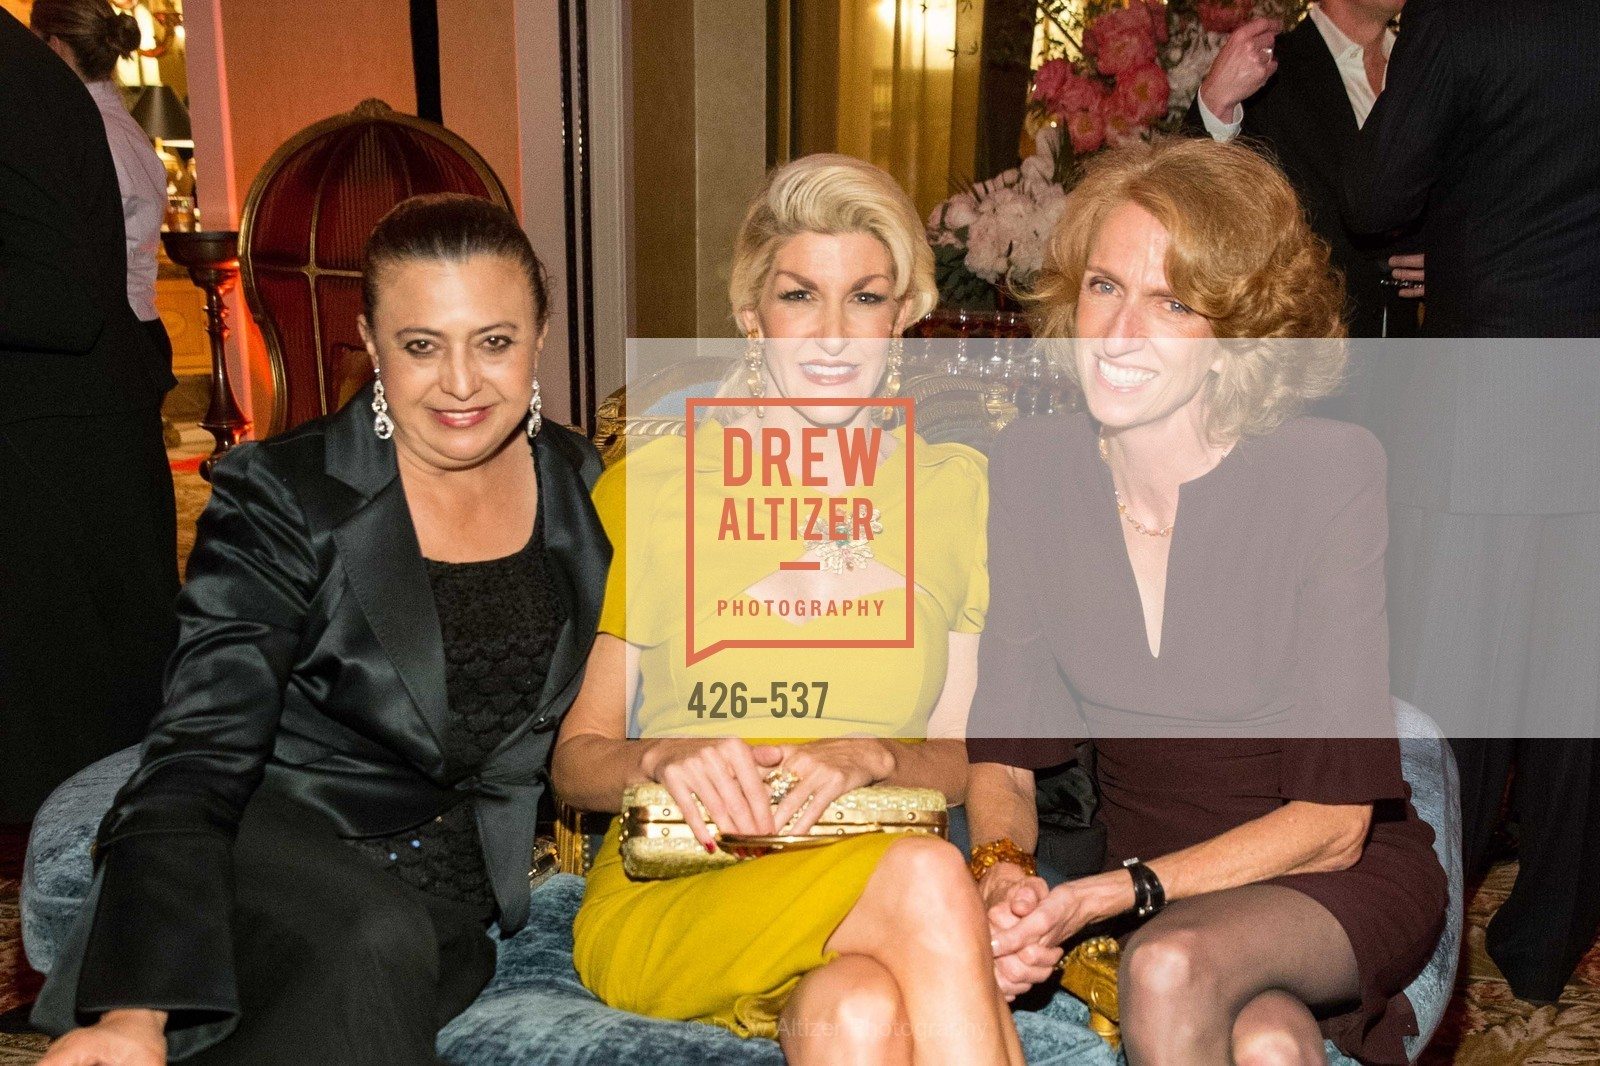 Ana Morales, Karen Caldwell, Marta Benson, TOP OF THE MARK'S 75TH Anniversary Party, US, November 7th, 2014,Drew Altizer, Drew Altizer Photography, full-service agency, private events, San Francisco photographer, photographer california